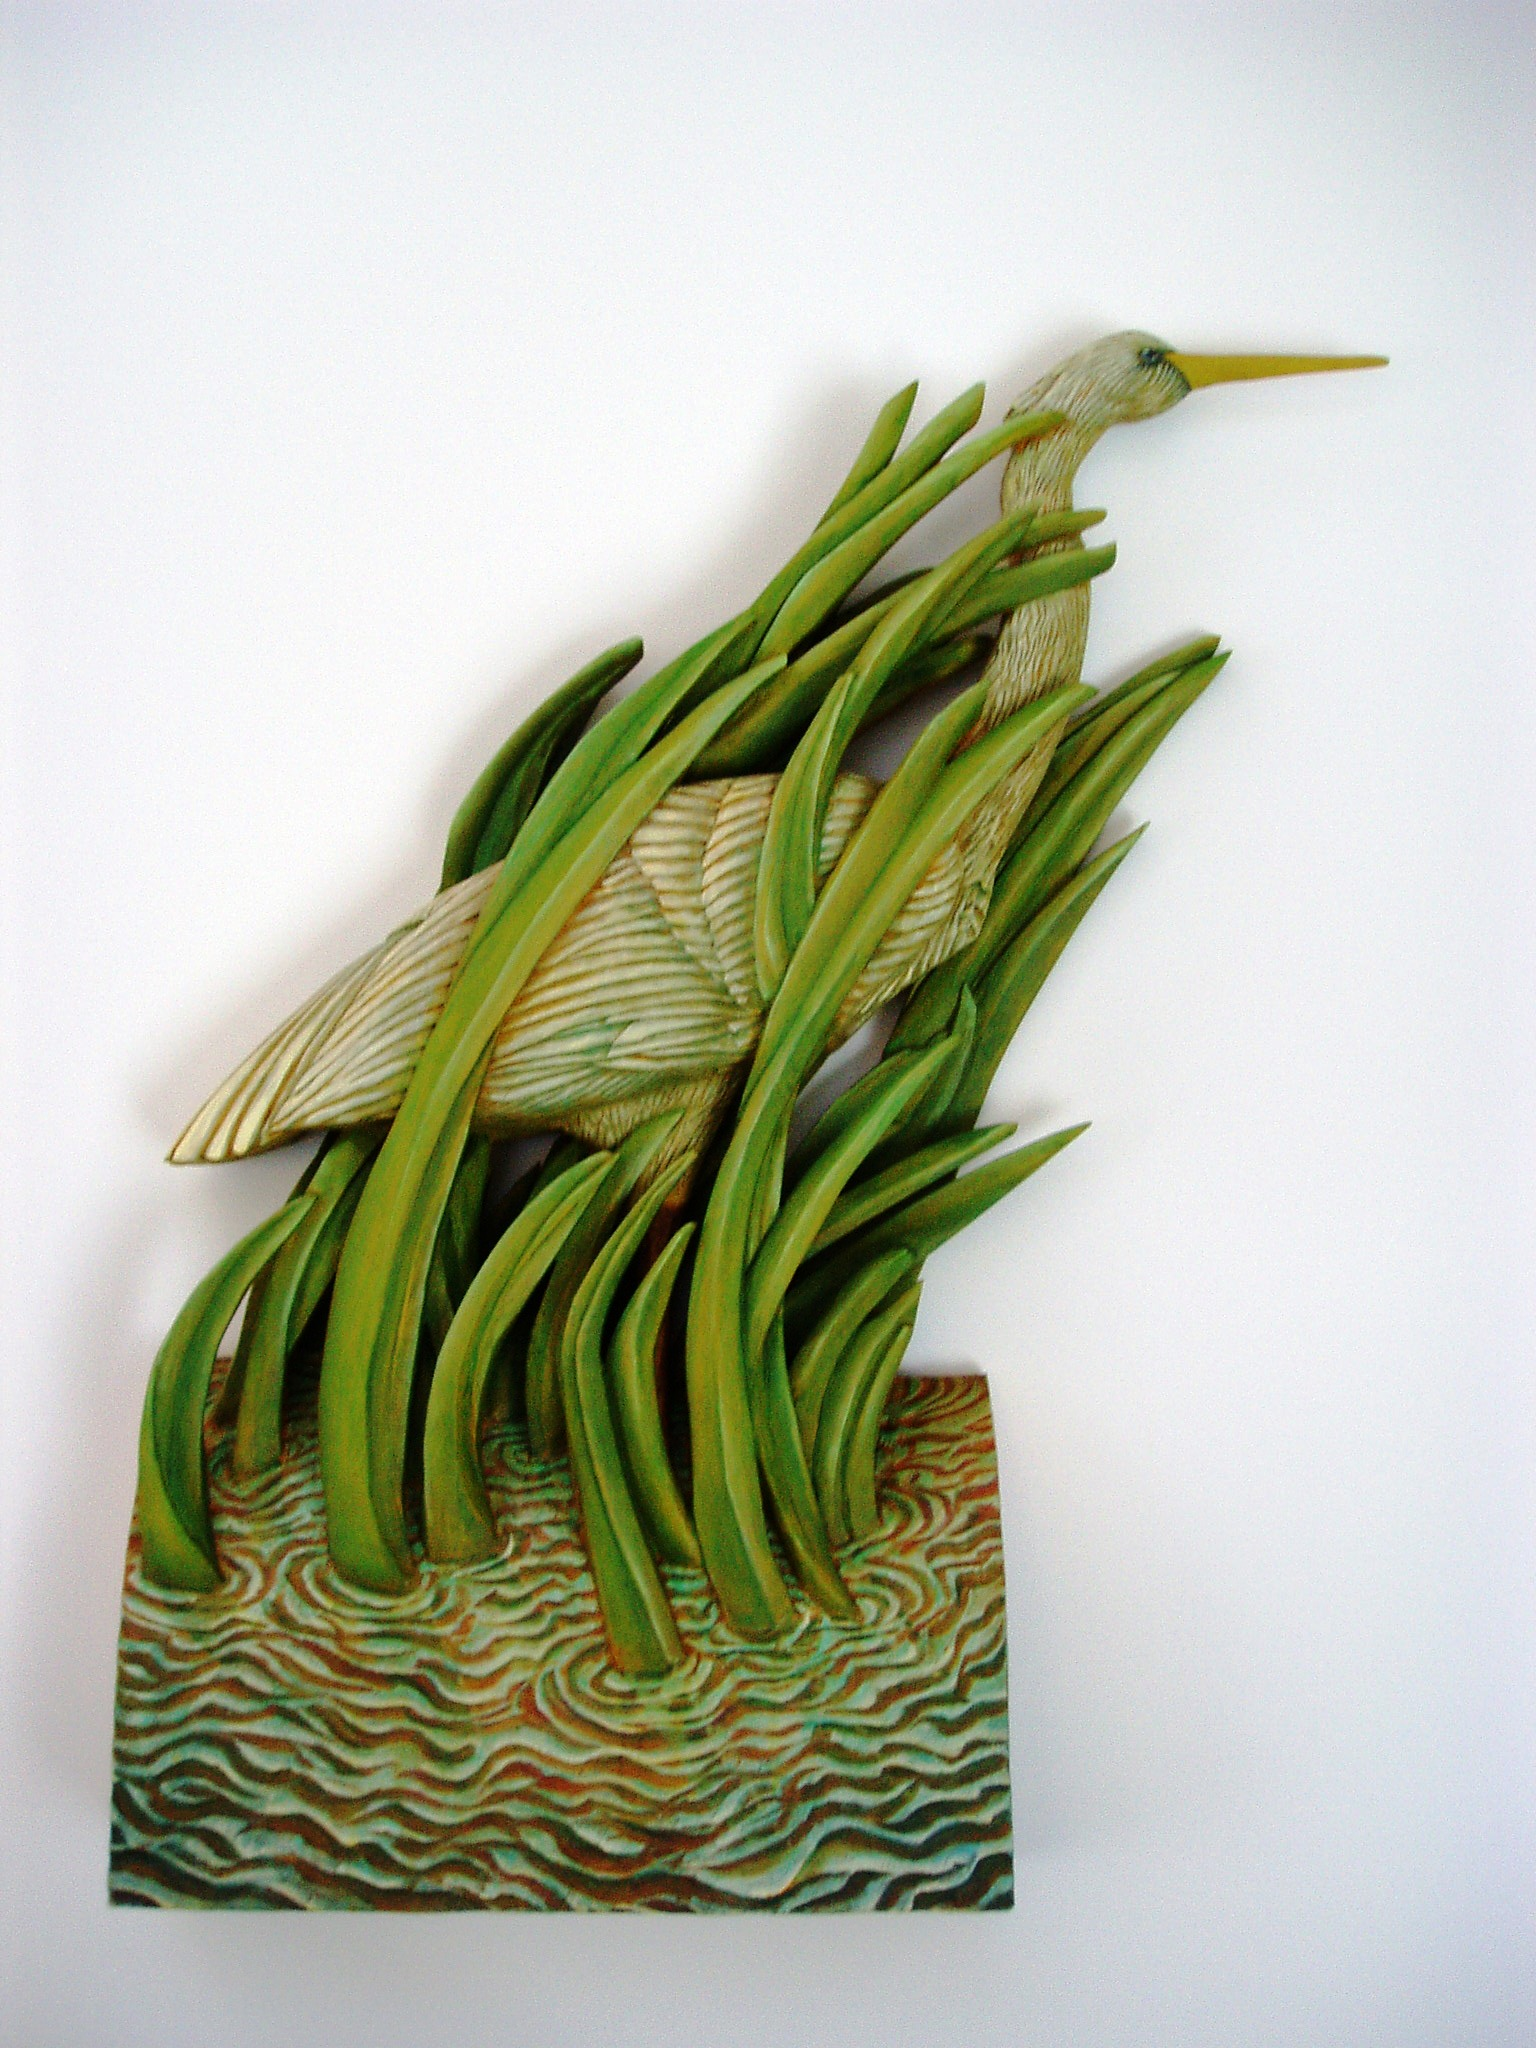 image of Large Wading Heron painted on carved, layered basswood depicts a heron wading amongst green reeds growing from a rippled block of water